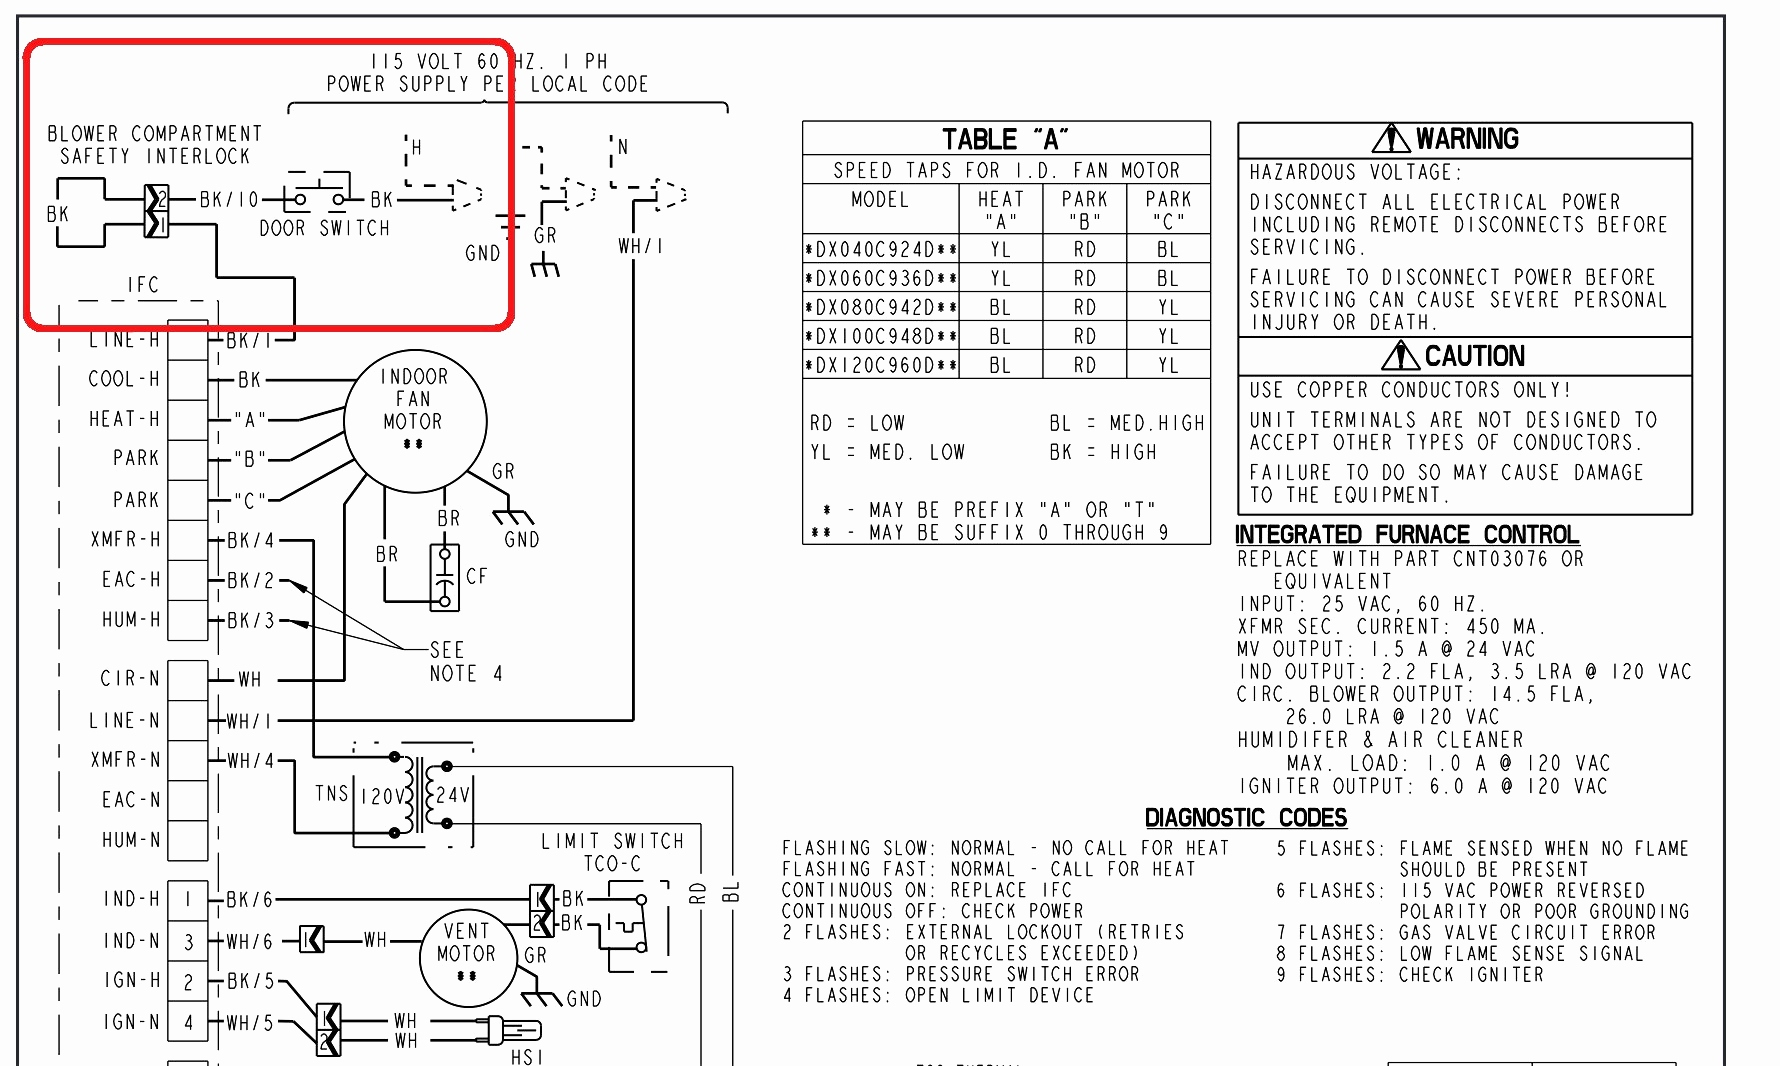 American Standard Air Conditioner Thermostat Wiring Diagram on friedrich air conditioners wiring diagram, american standard air conditioner capacitor, american standard garbage disposal wiring diagram, american standard air conditioner parts, american standard pump wiring diagram, american standard air conditioner cover,